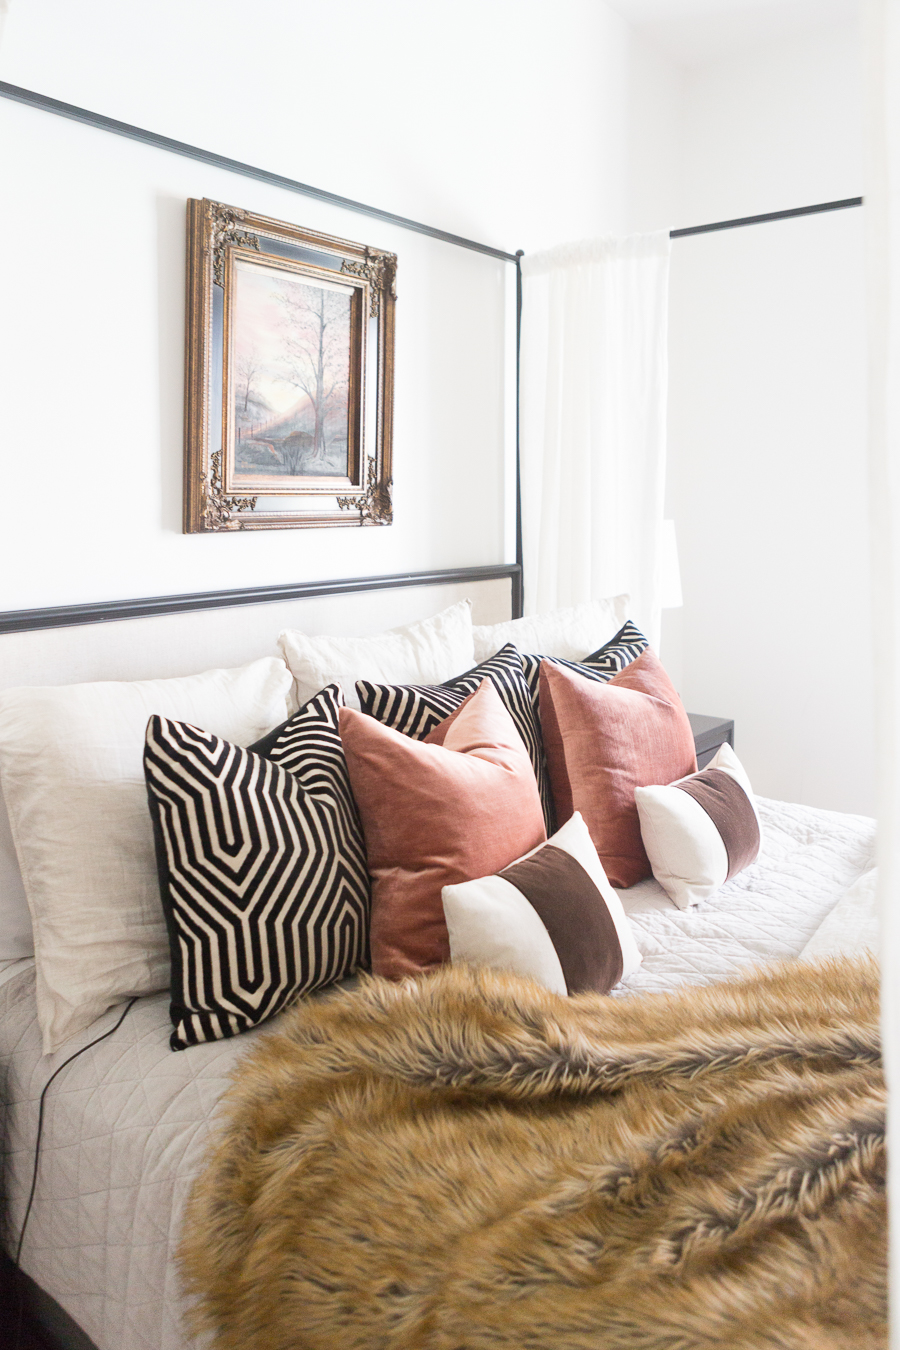 Loveliest Looks of Fall Home Tour Beautiful Fall Home Decor and Fall Fashion Ideas white master bedroom with a black canopy bed and a gold and black frame hanging above the bed with fall tree art linen bedding with black and white graphic mary mcdonald fabric velvet pillows behind blush velvet pillows and a fur throw on the bed